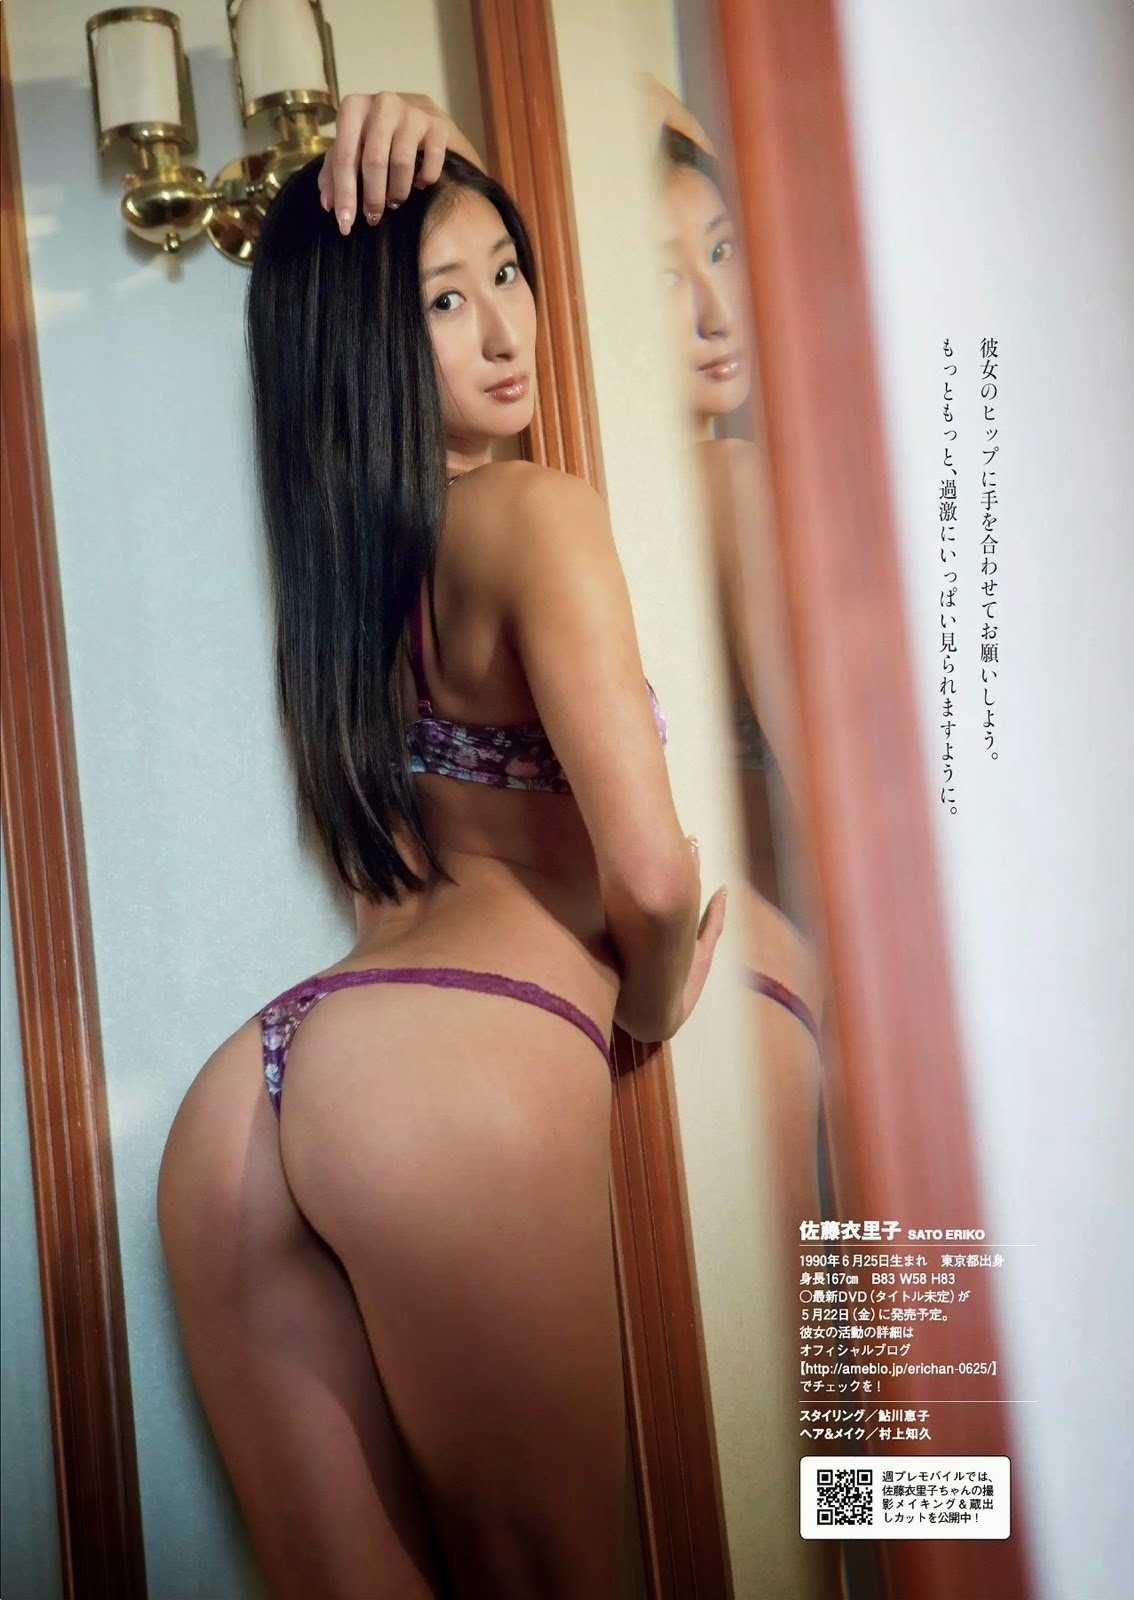 Sato Eriko 佐藤衣里子 Weekly Playboy April 2015 Photos 4